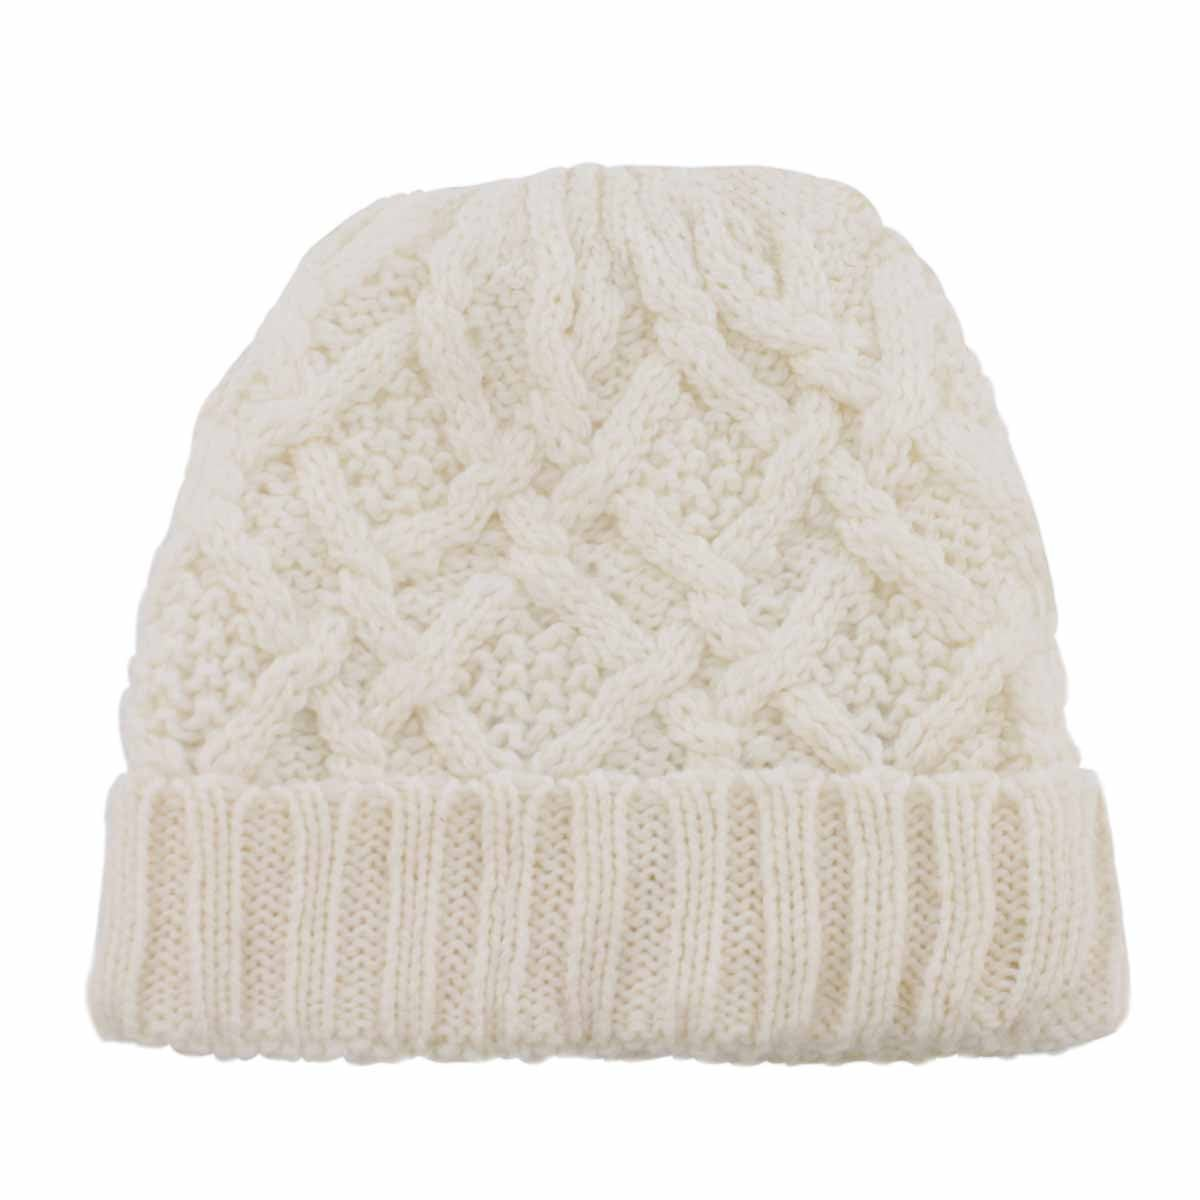 Lds Cable Knit off white lined hat